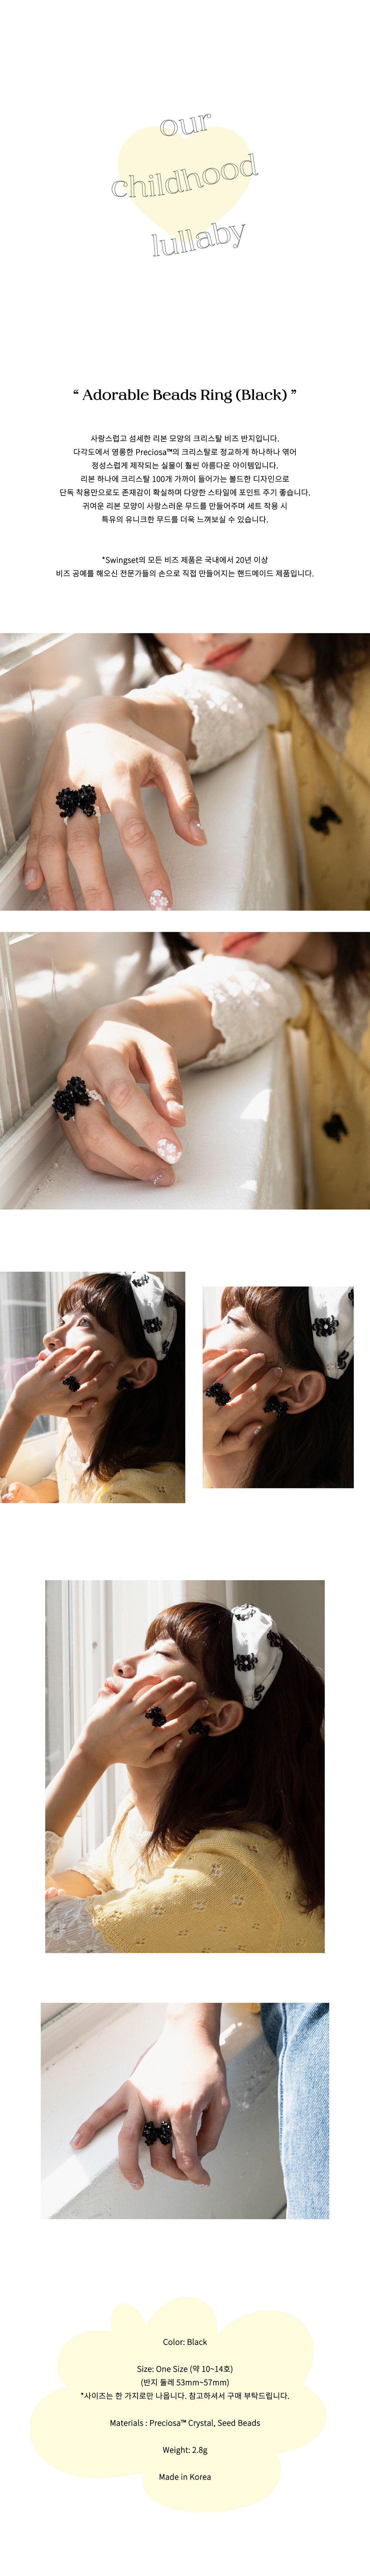 Adorable Beads Ring (Black)